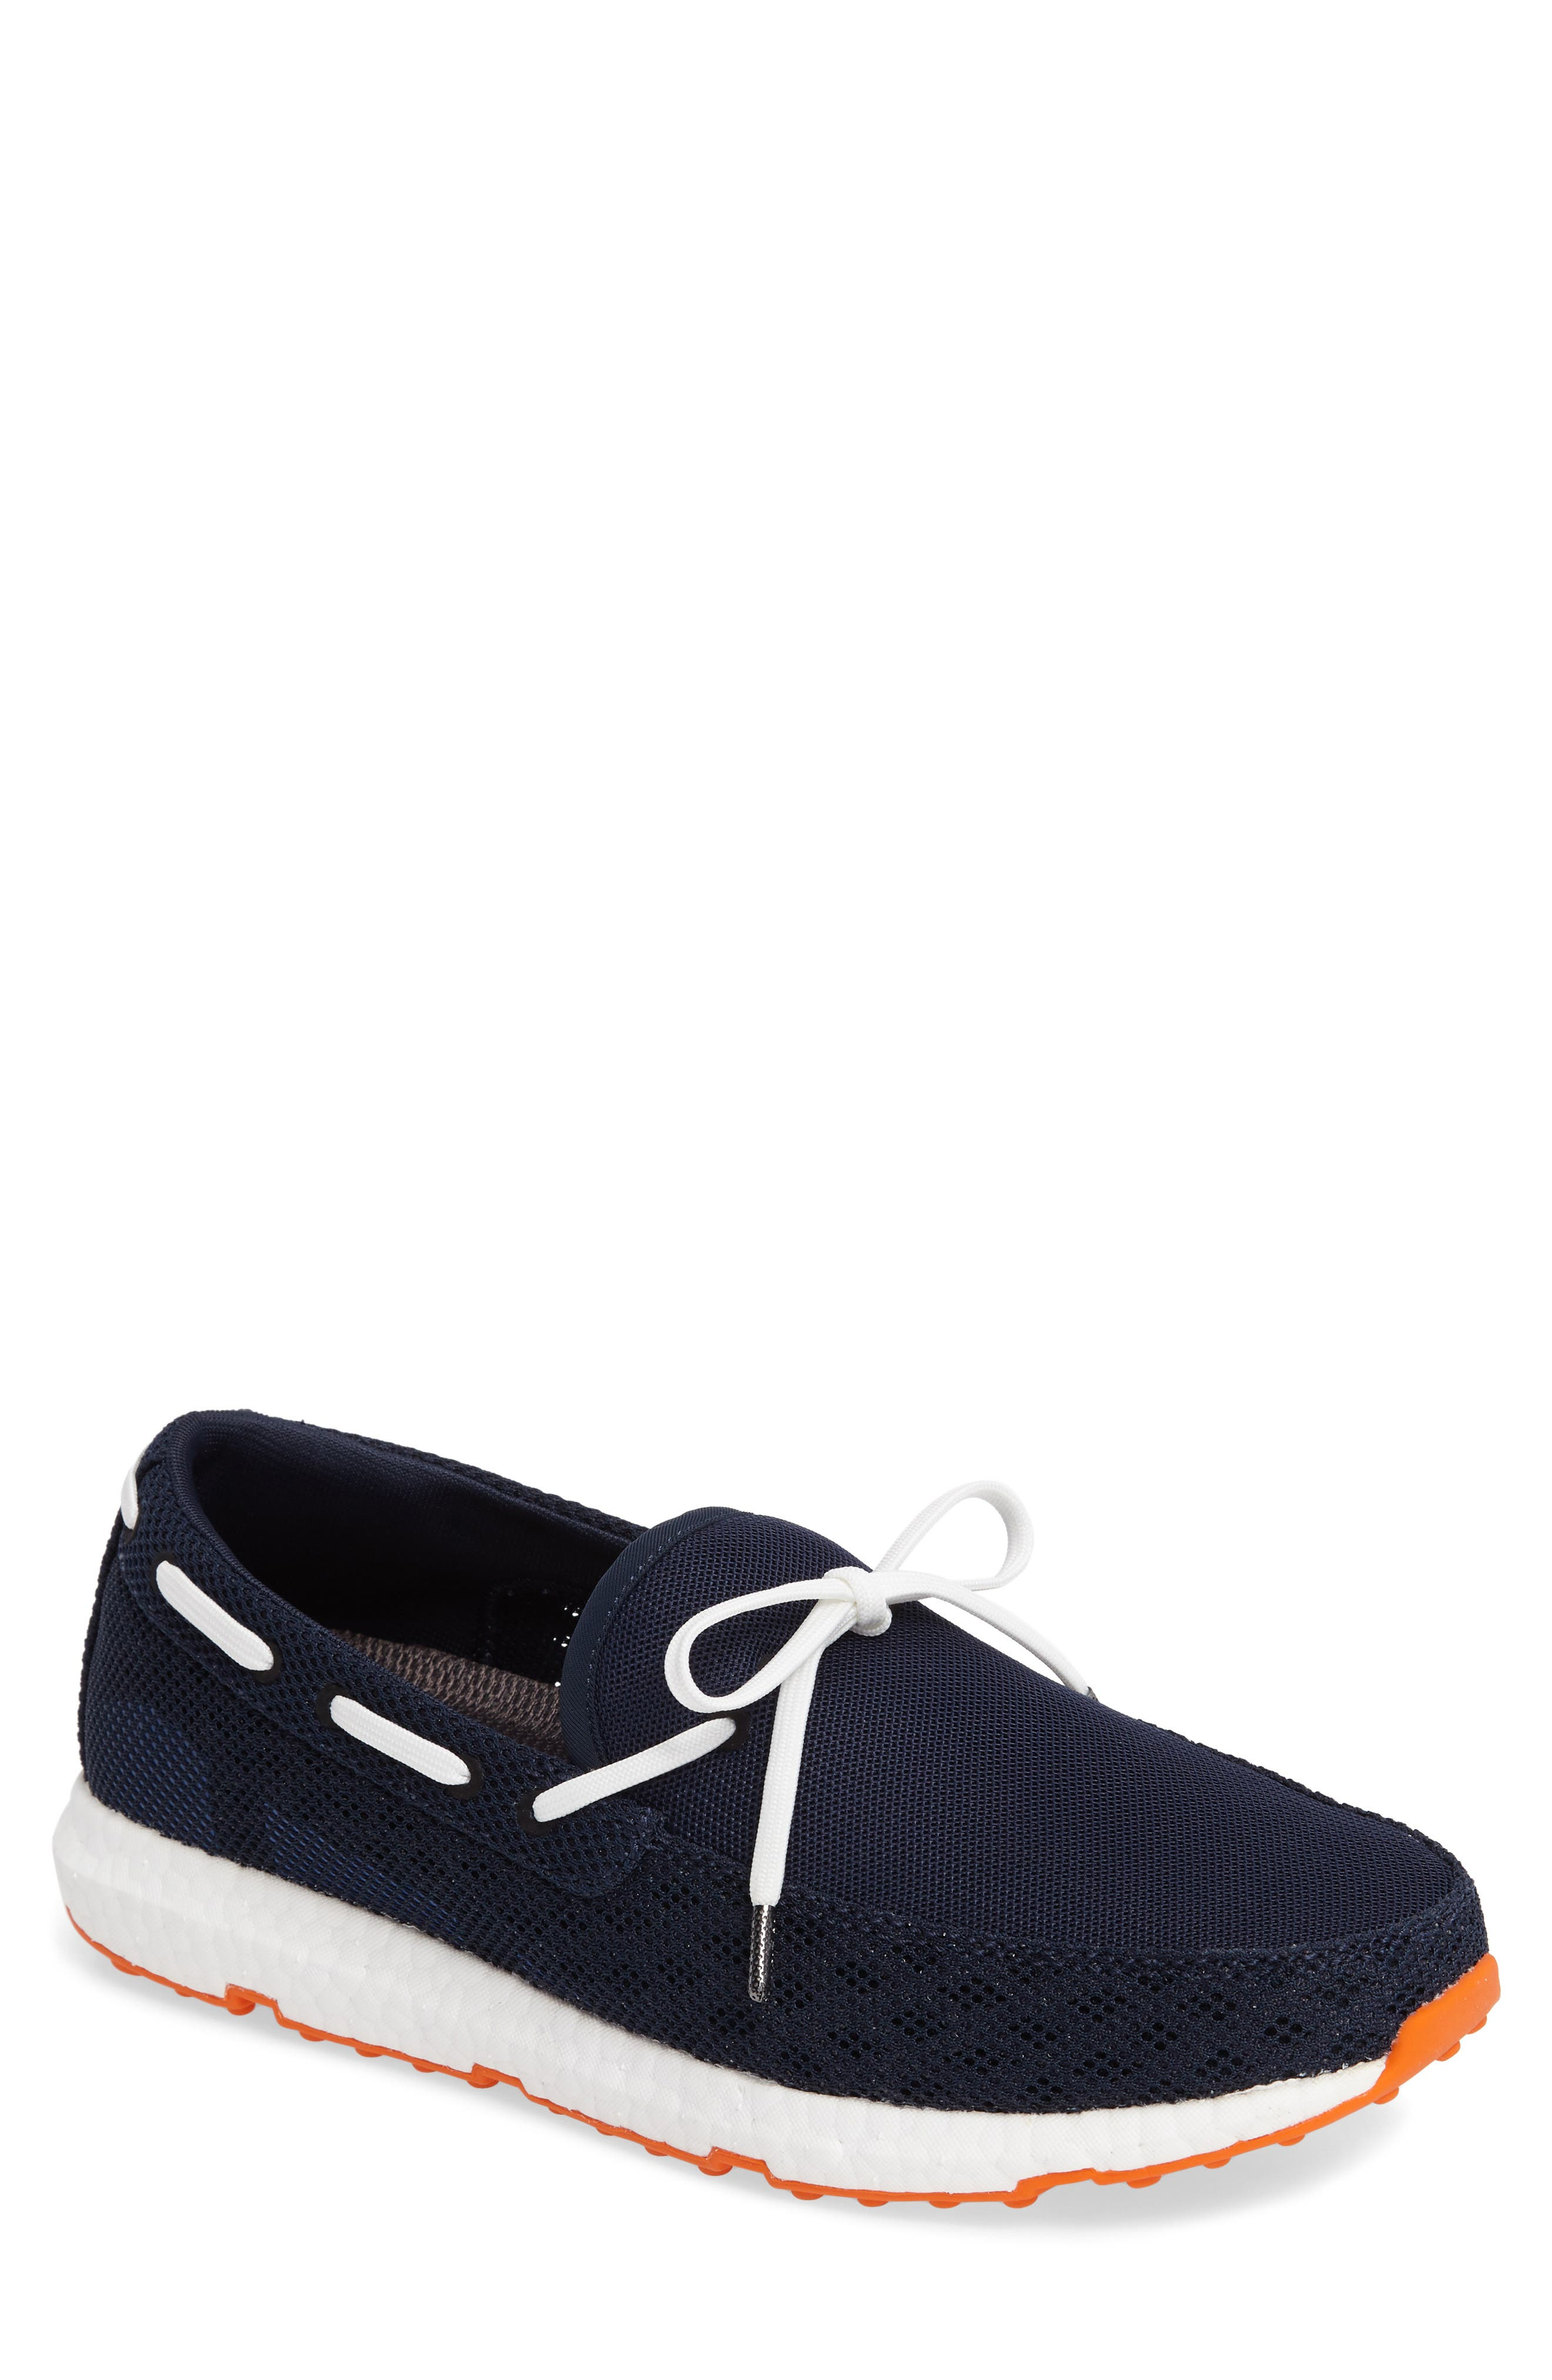 Breeze Loafer,                             Main thumbnail 1, color,